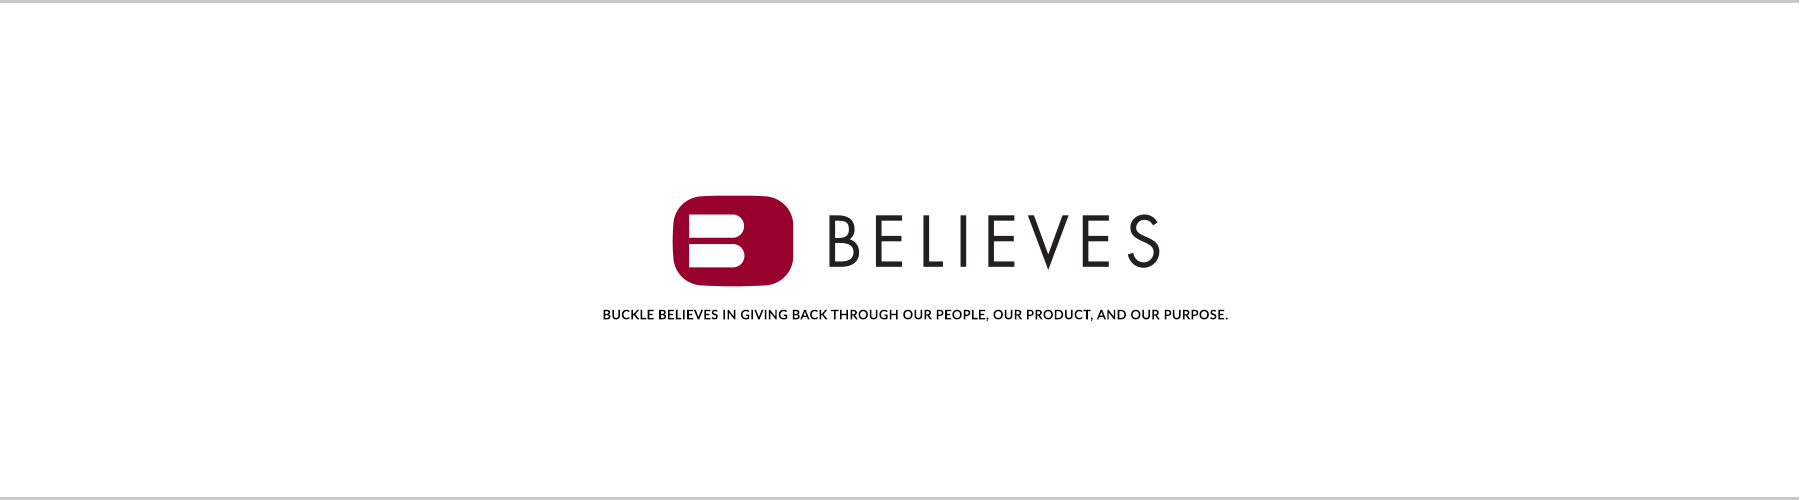 Buckle believes in giving back through our people, our product, and our purpose.